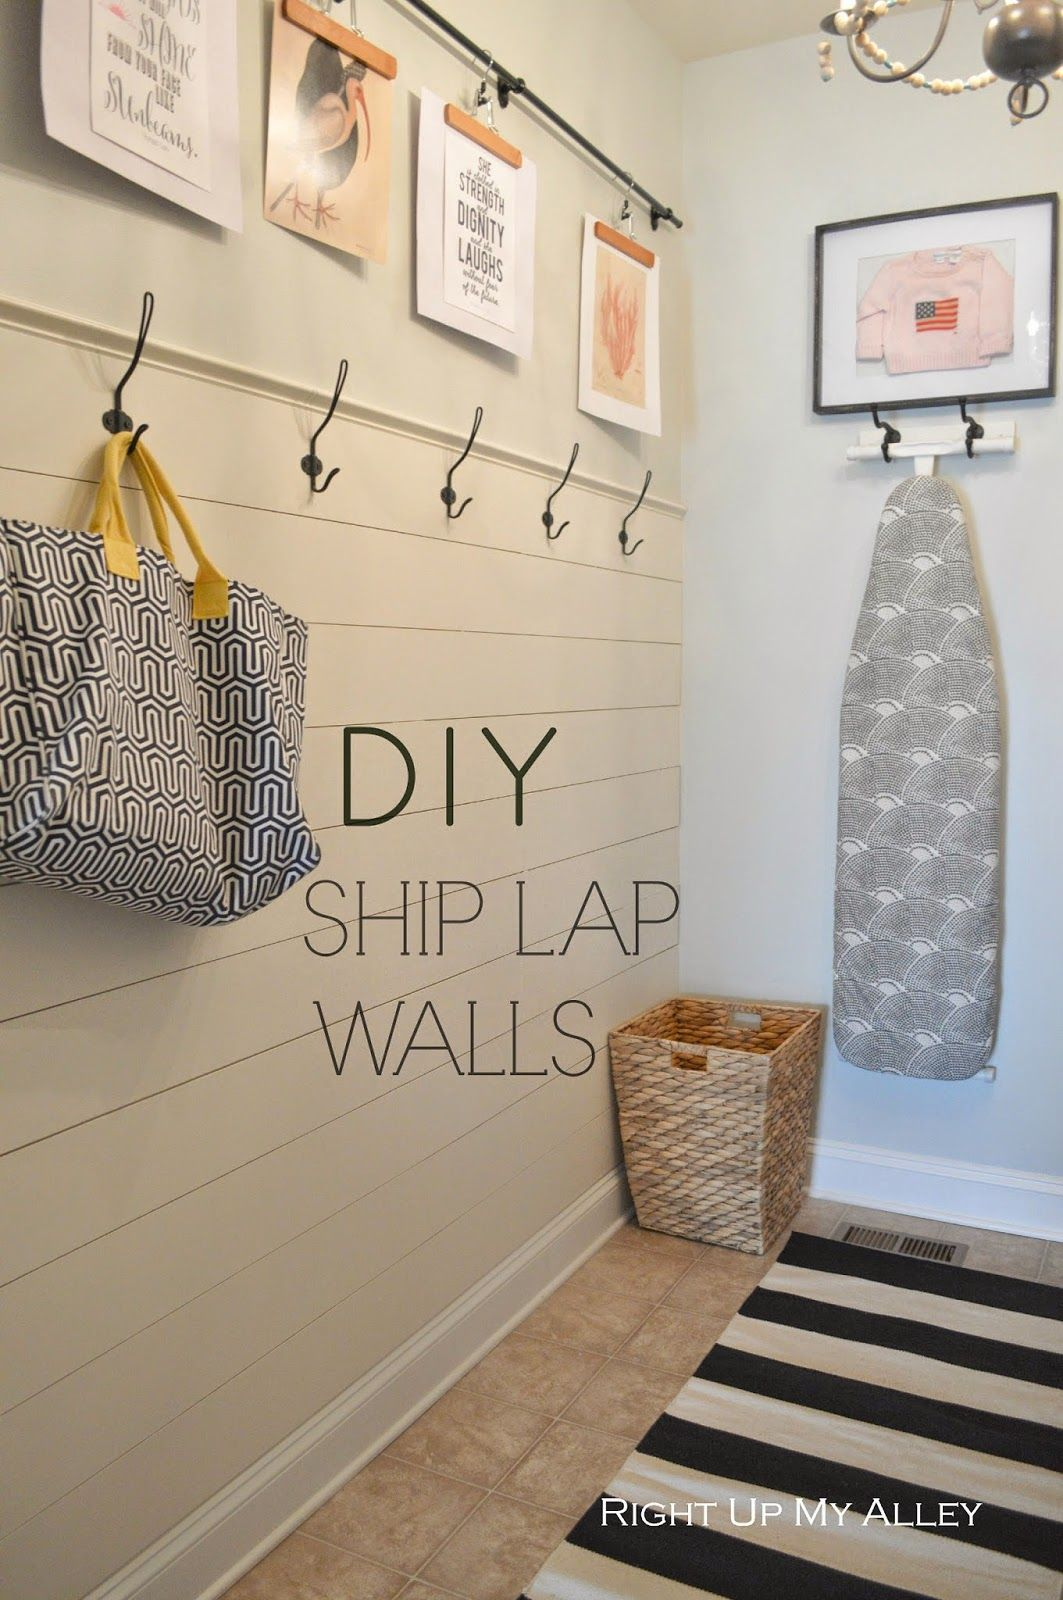 DIY Ship Lap Wall  Laundry room makeover, Diy shiplap, Home diy